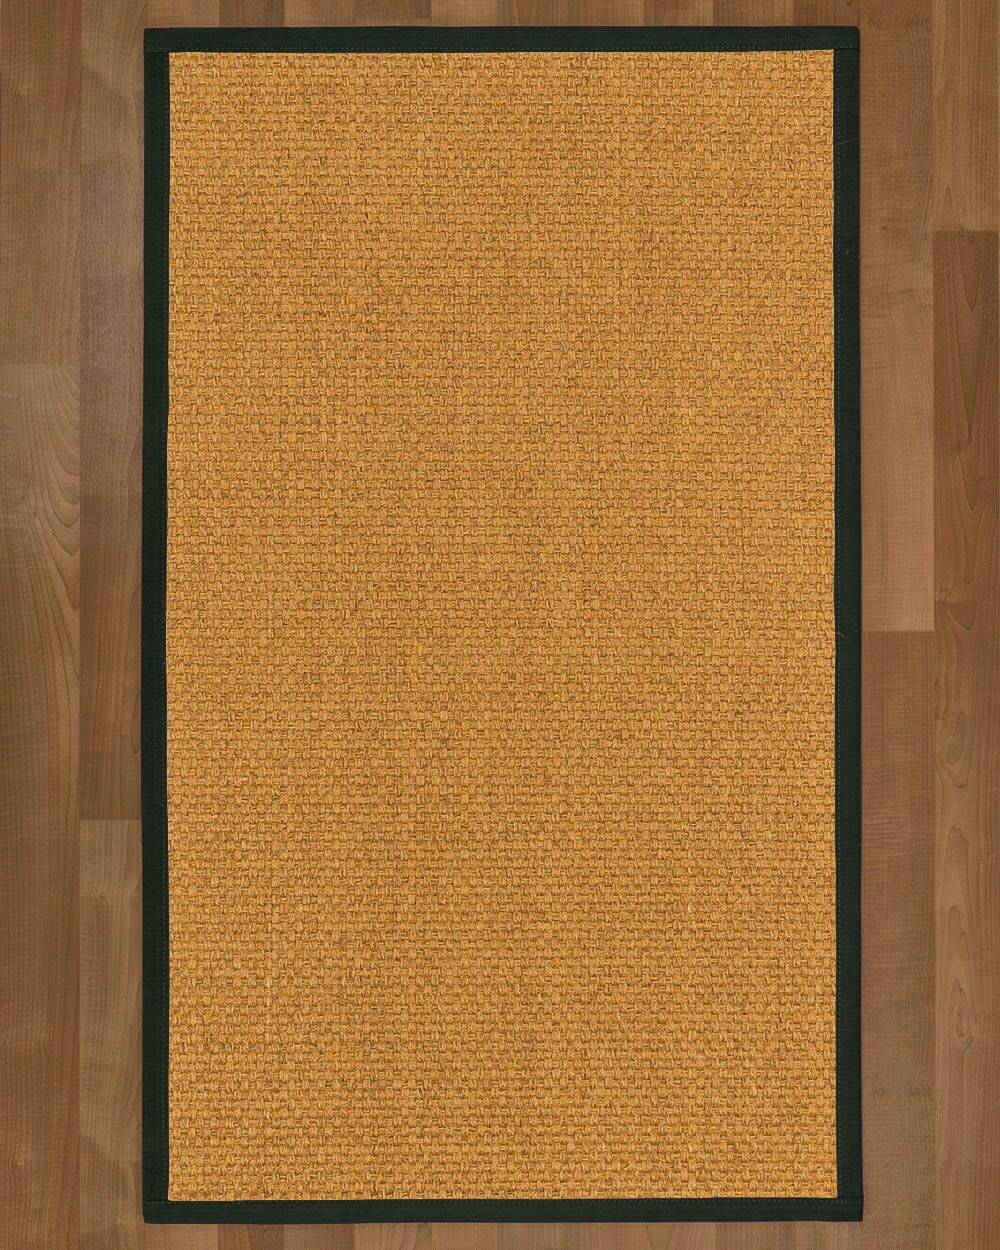 Andlau Hand Woven Brown Area Rug Rug Size: Rectangle 3' X 5'